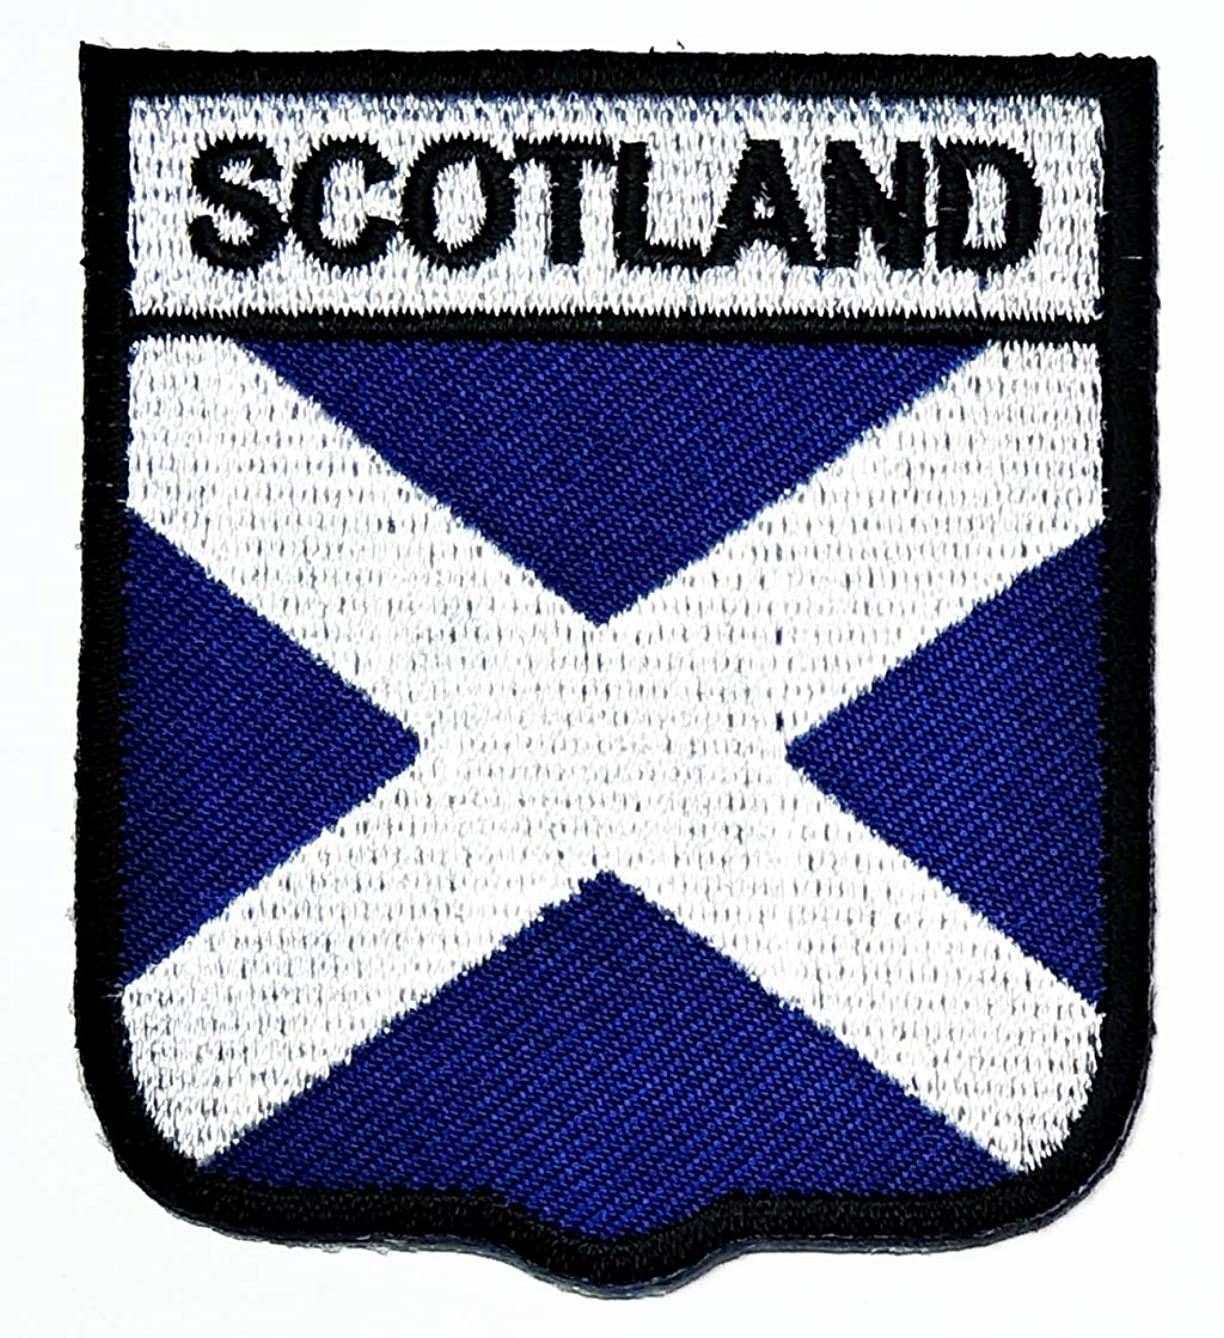 Nipitshop Patches Scotland Country Flag Embroidered National Emblem Patch Clothes Bag T-Shirt Jeans Biker Badge Applique Iron on Sew On Patch for Women Men and Kid or Gift Set